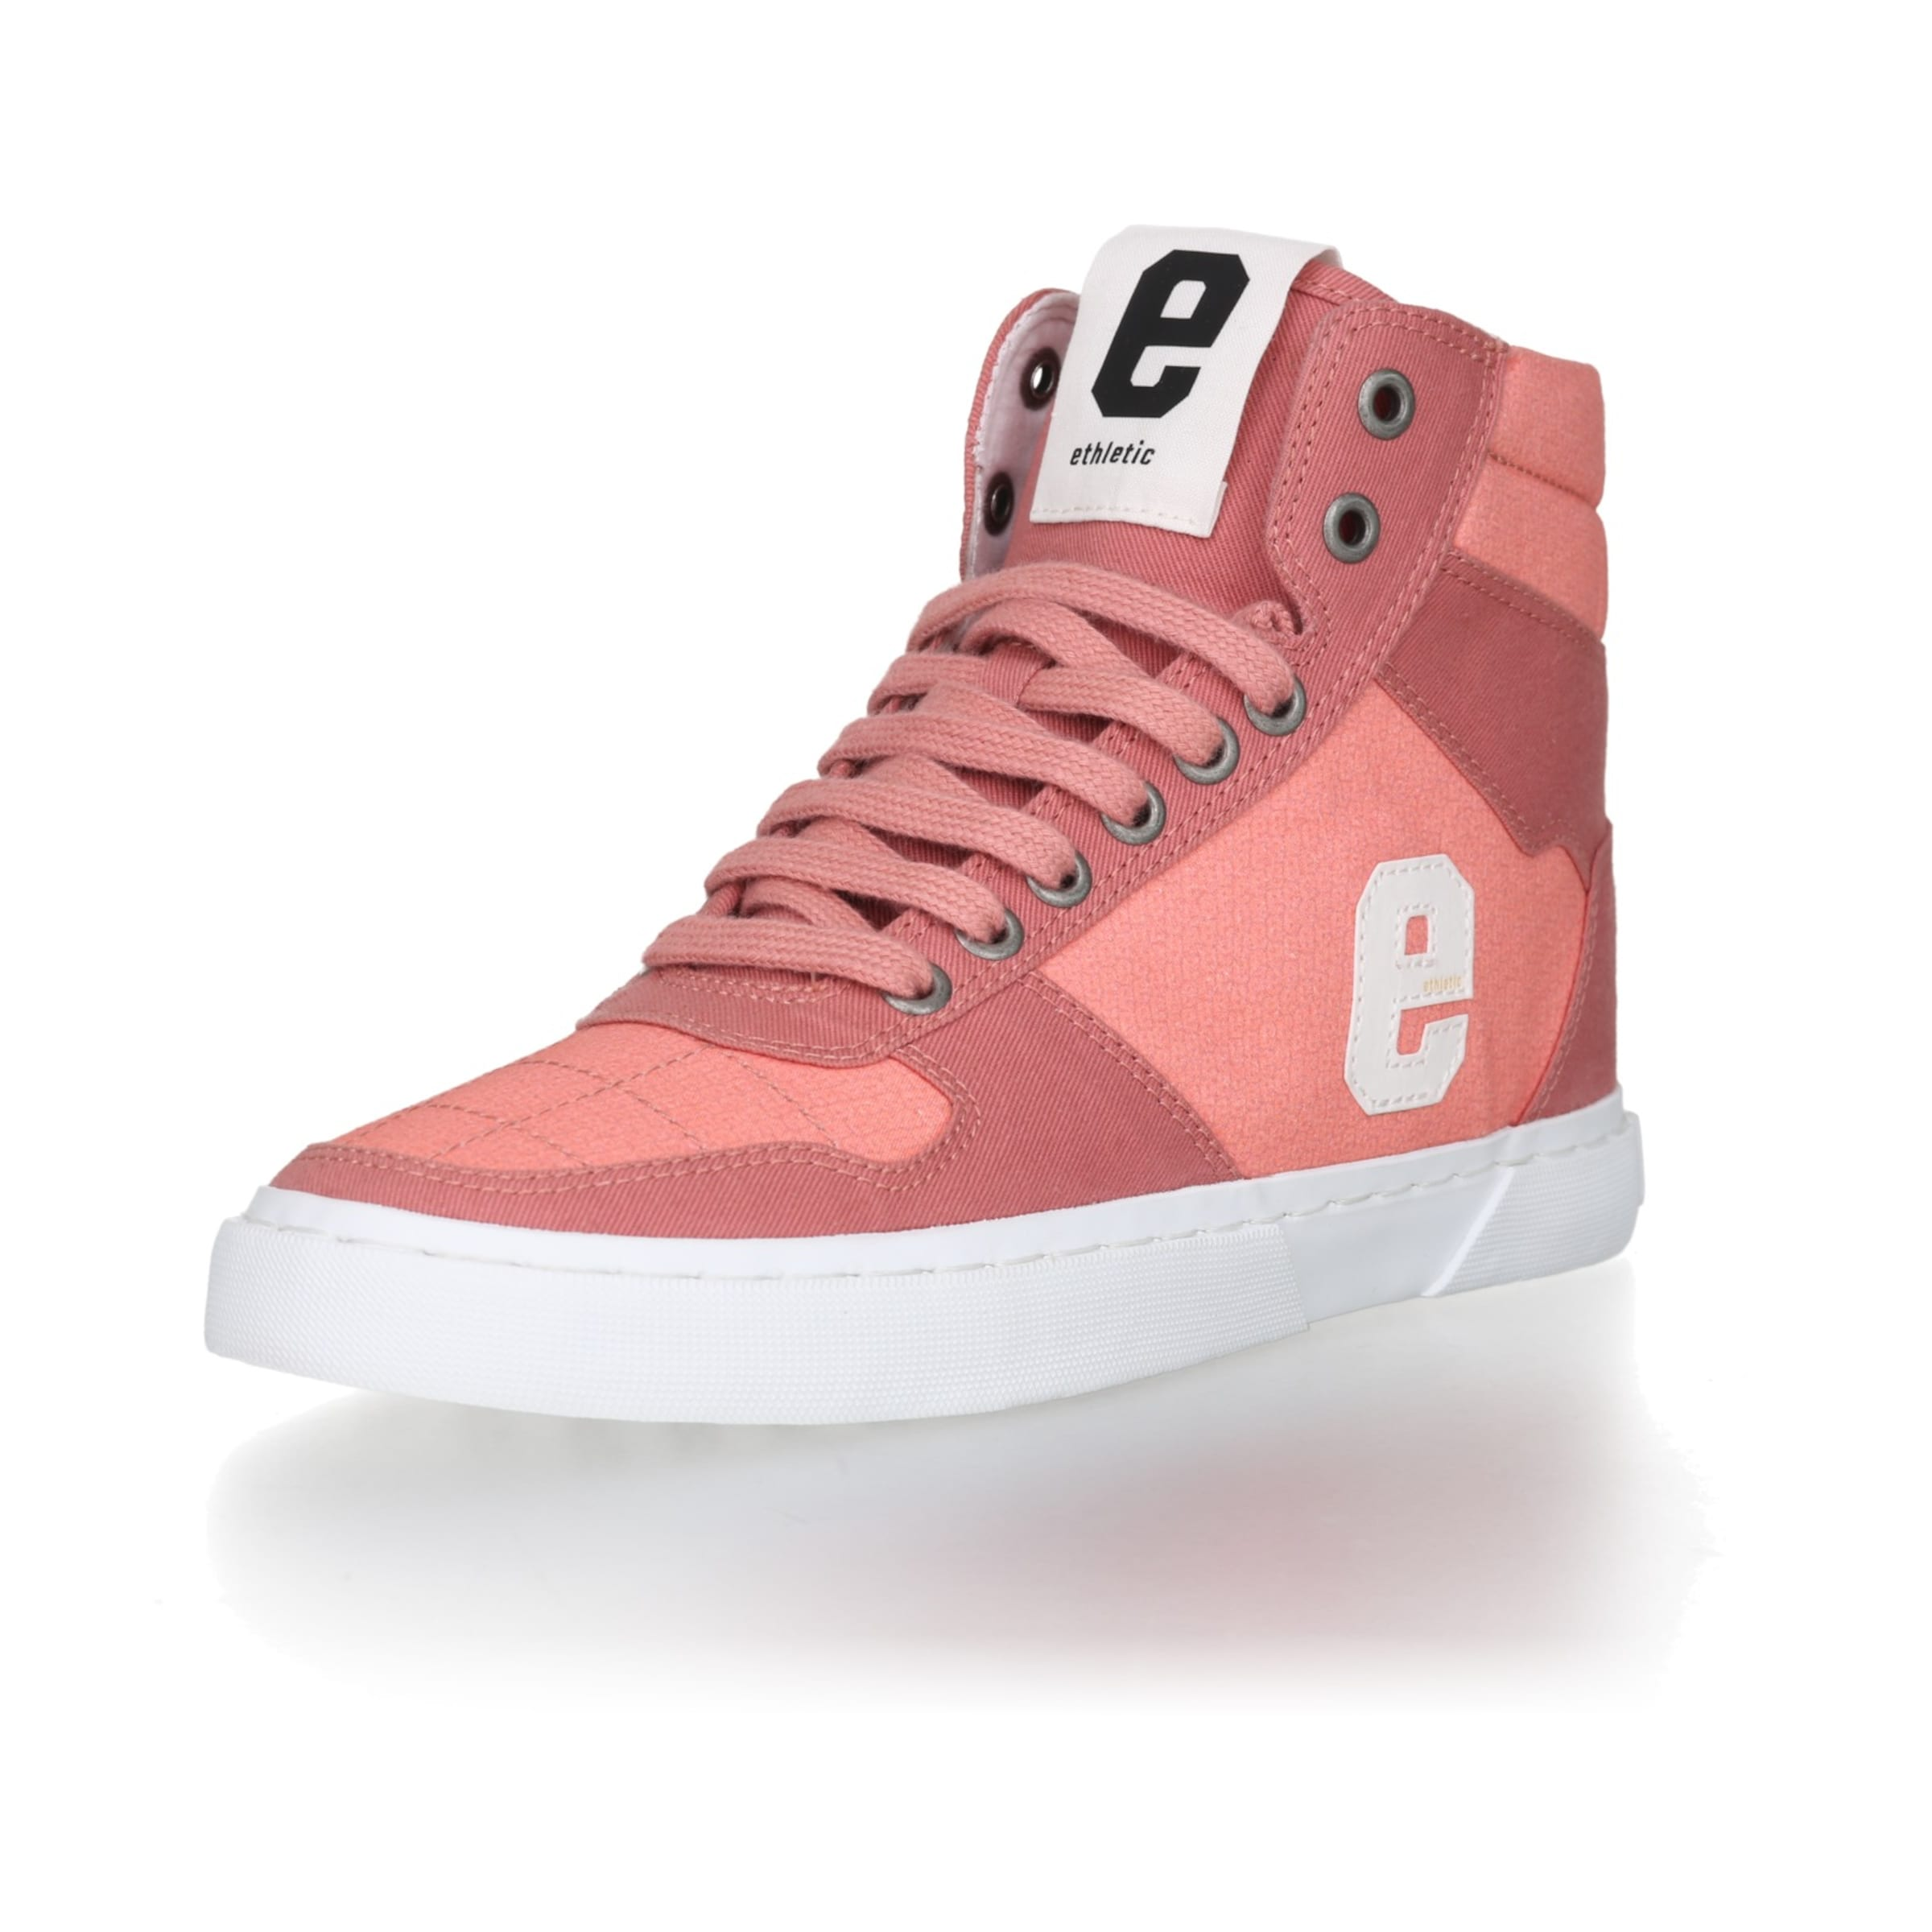 18' Ethletic In 'hiro Sneaker AltrosaDunkelpink VqUzMSp